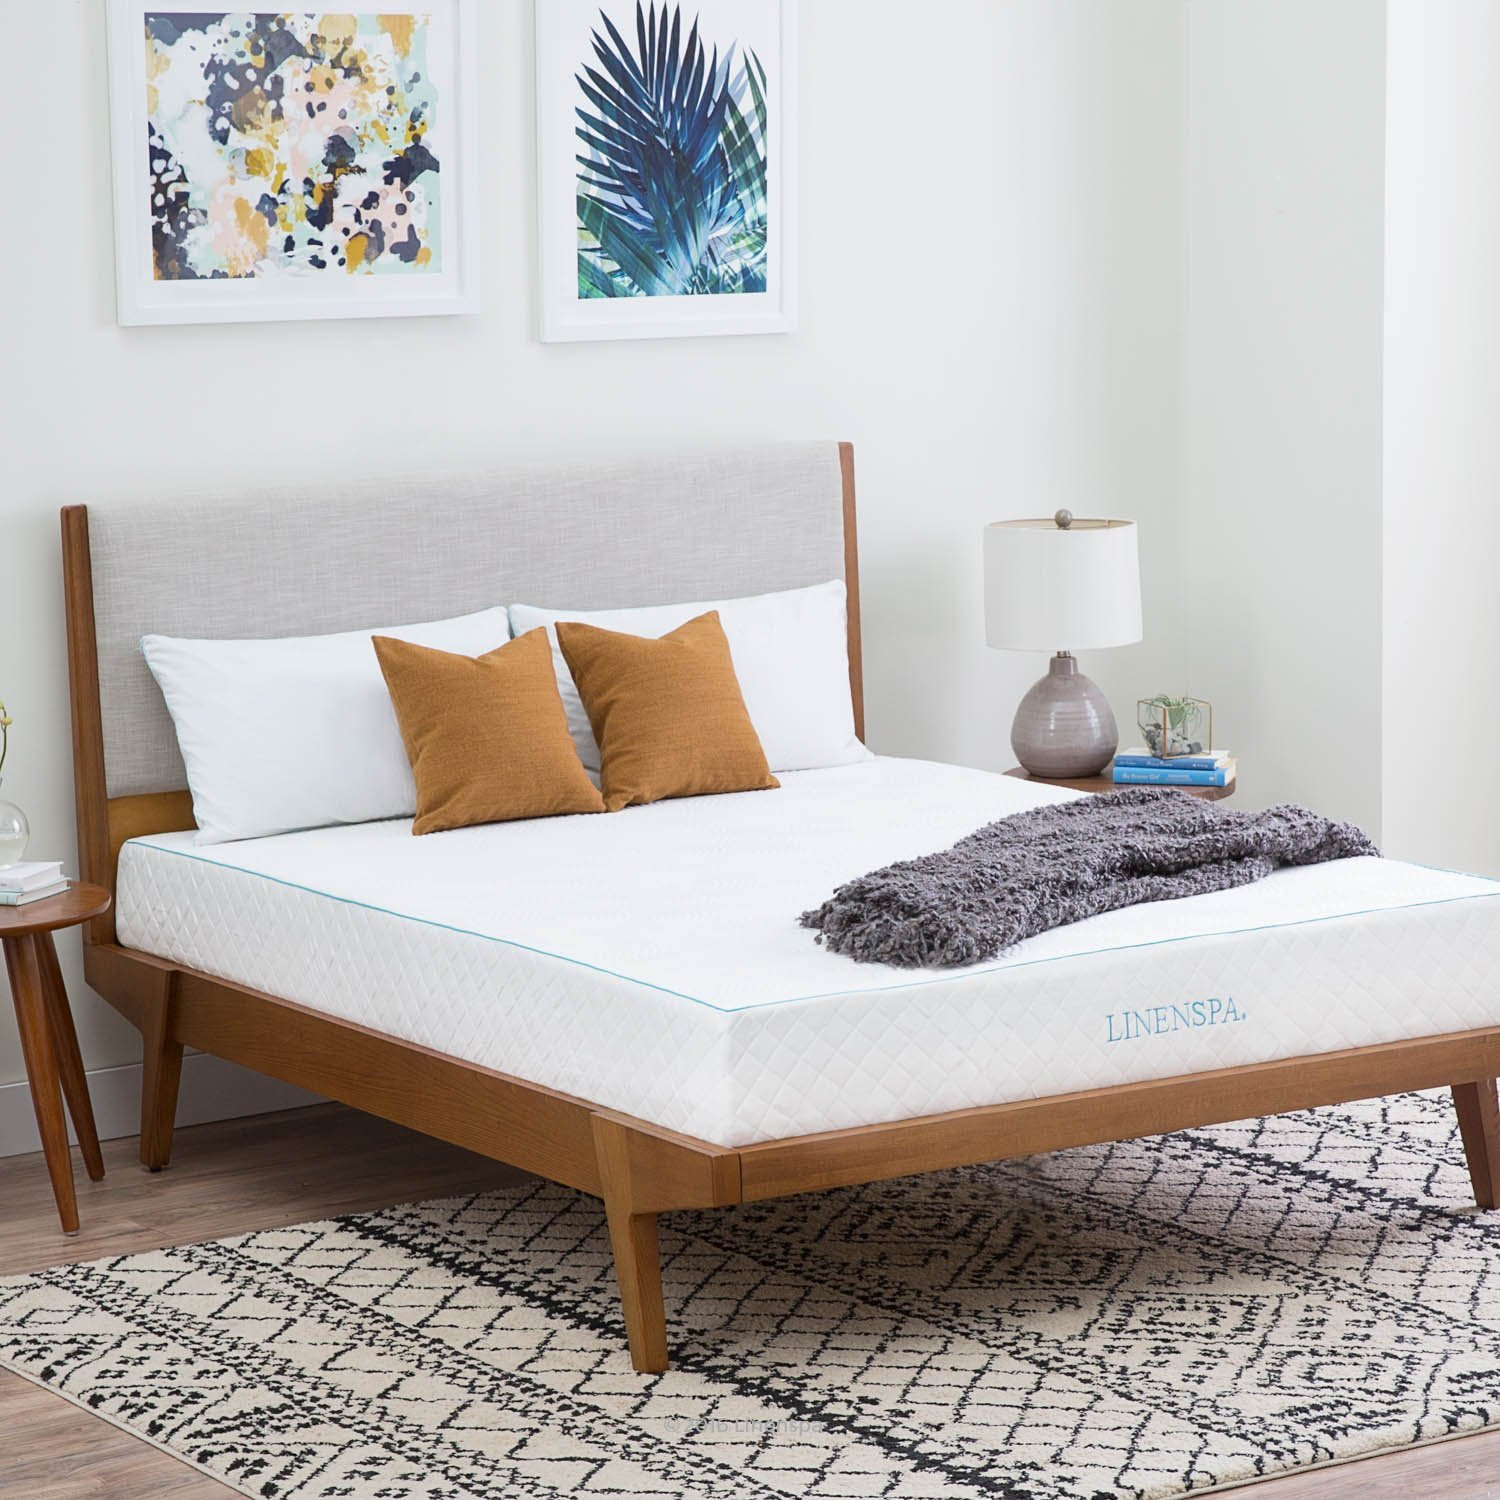 Linenspa's 10-inch Gel Memory Foam Mattress